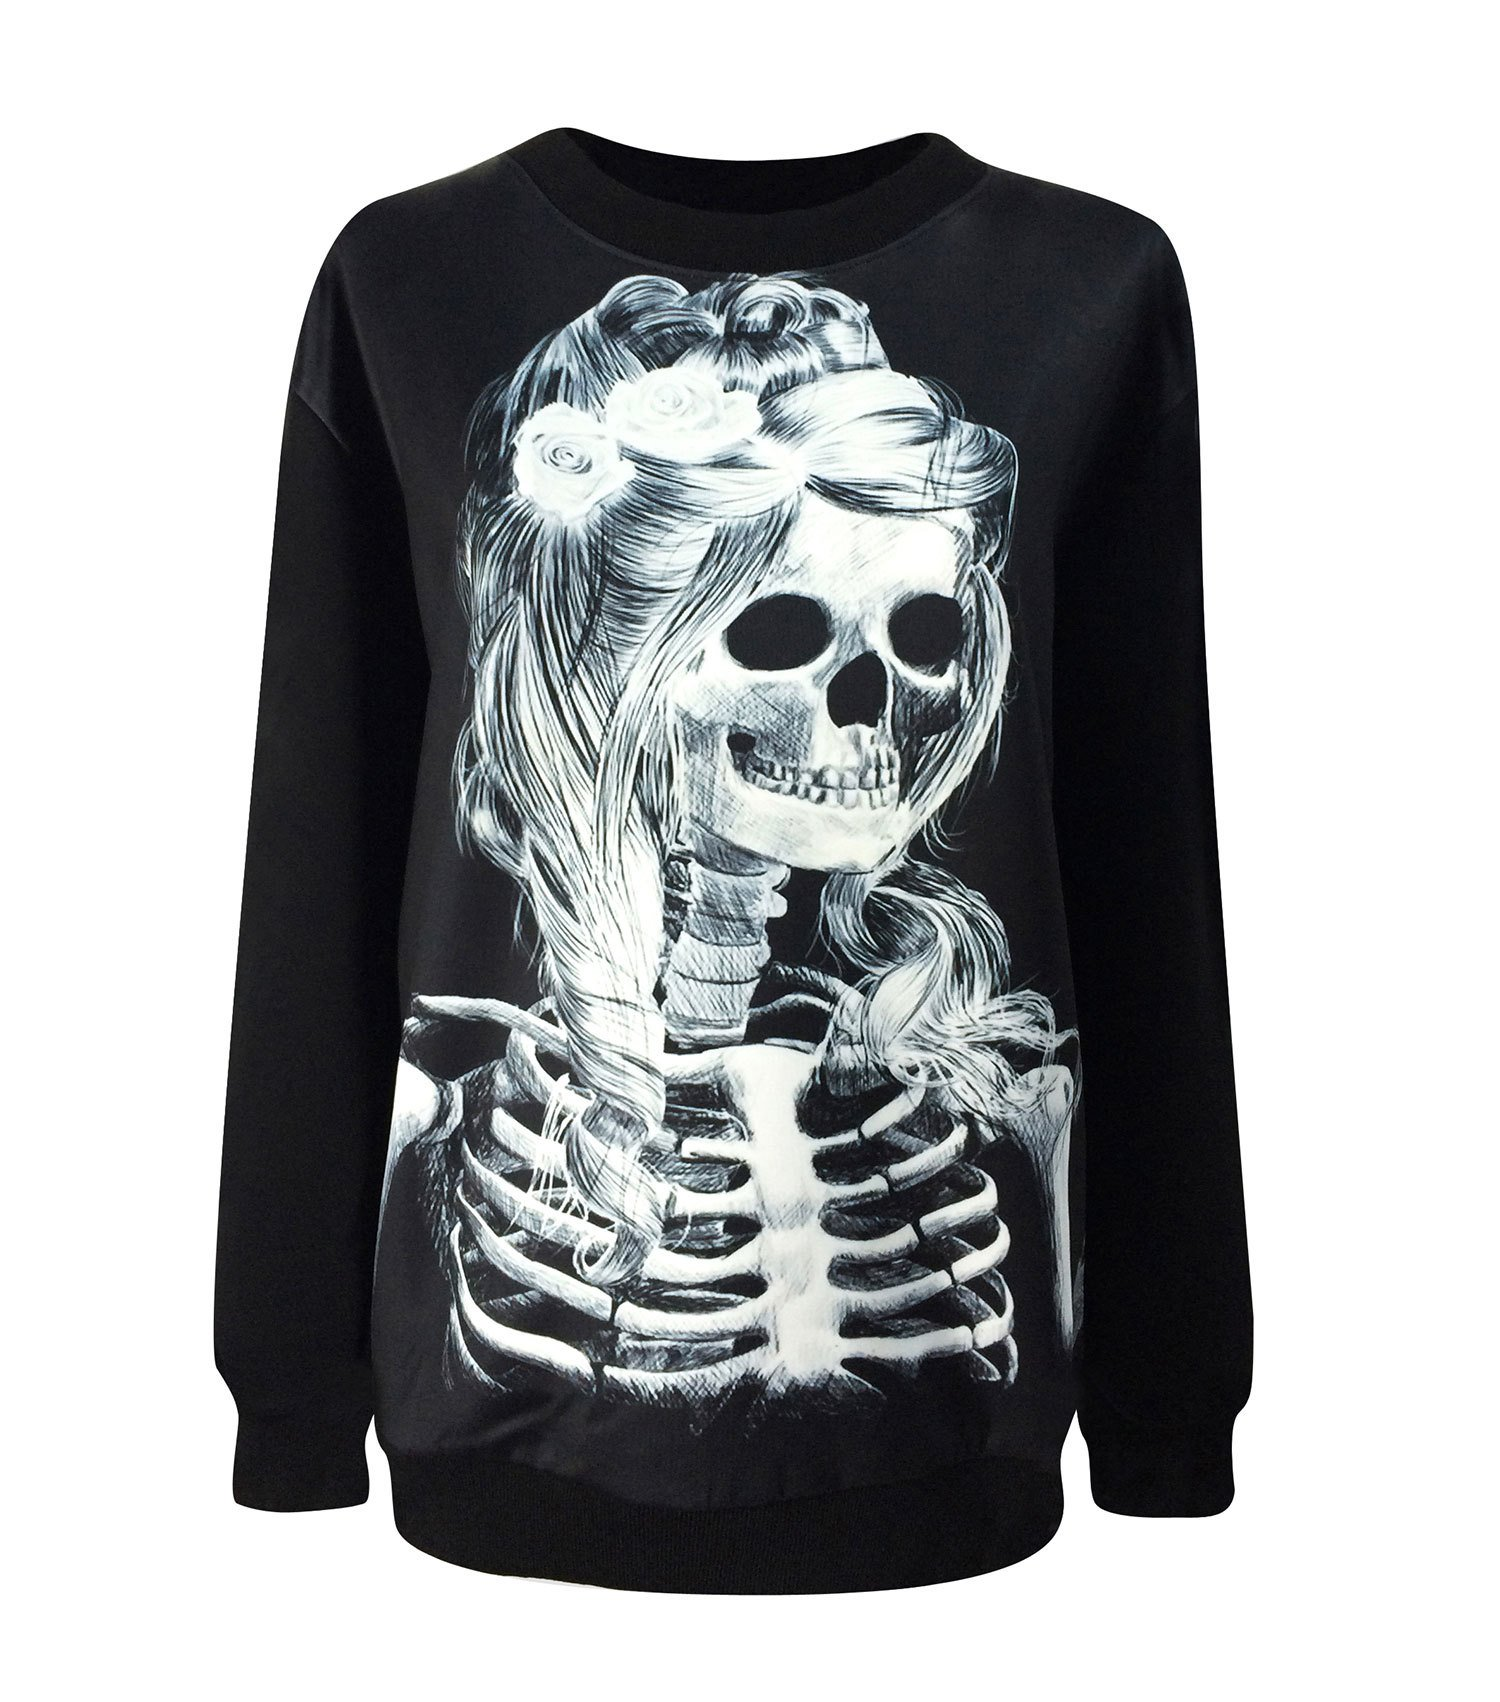 Women's Punk Rock Printing Skull Skeleton Beauty Sweatshirts